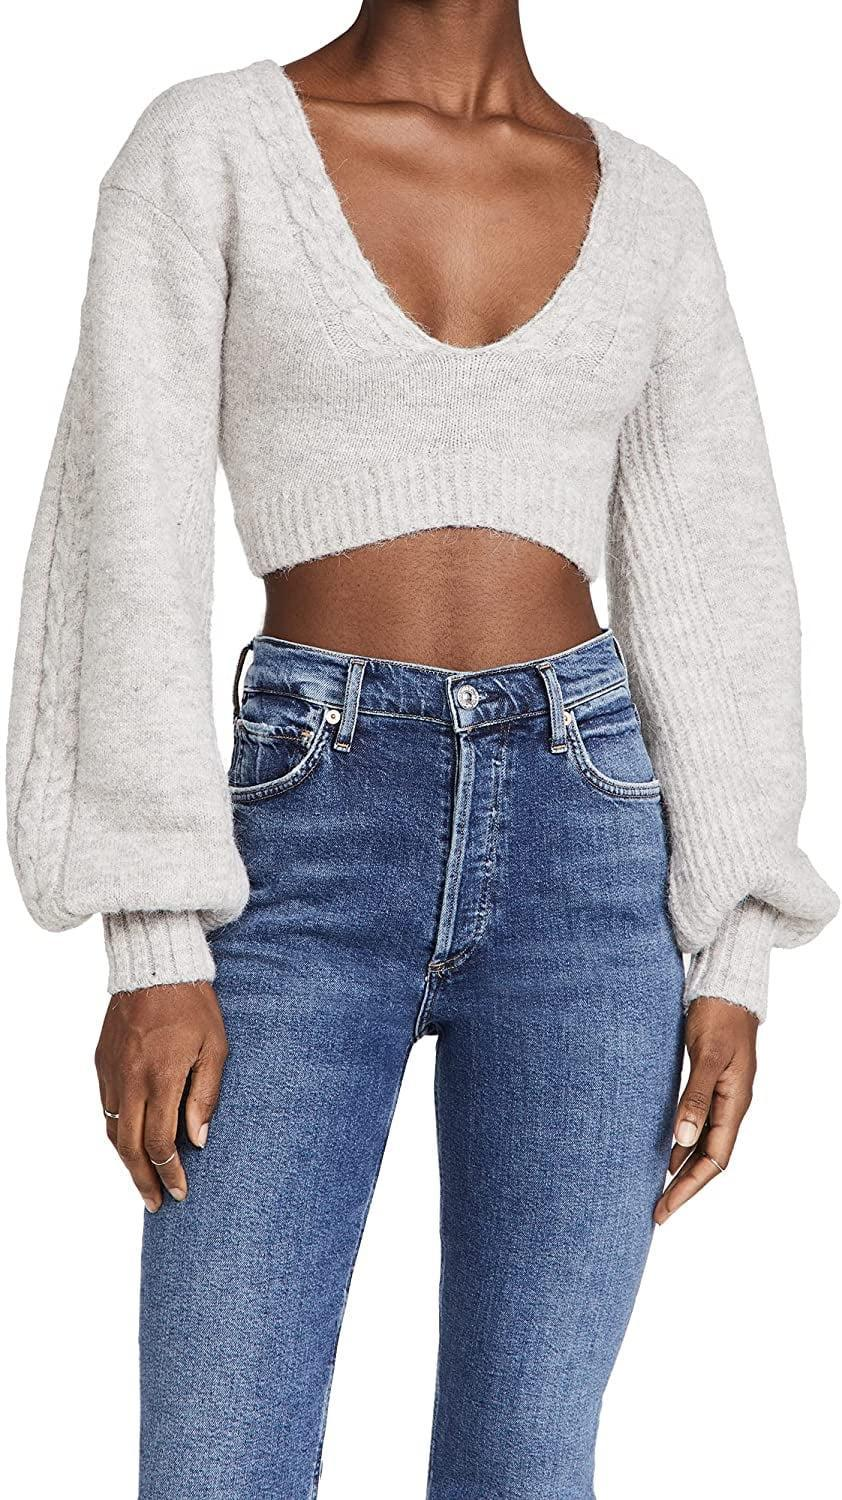 <p>The sleeves may be oversized, but this <span>For Love and Lemons Amelia Crop Sweater</span> ($154) has a slim chance of not making a statement on a night out. The cropped shape is a great contrast to the cool, large sleeves.</p>